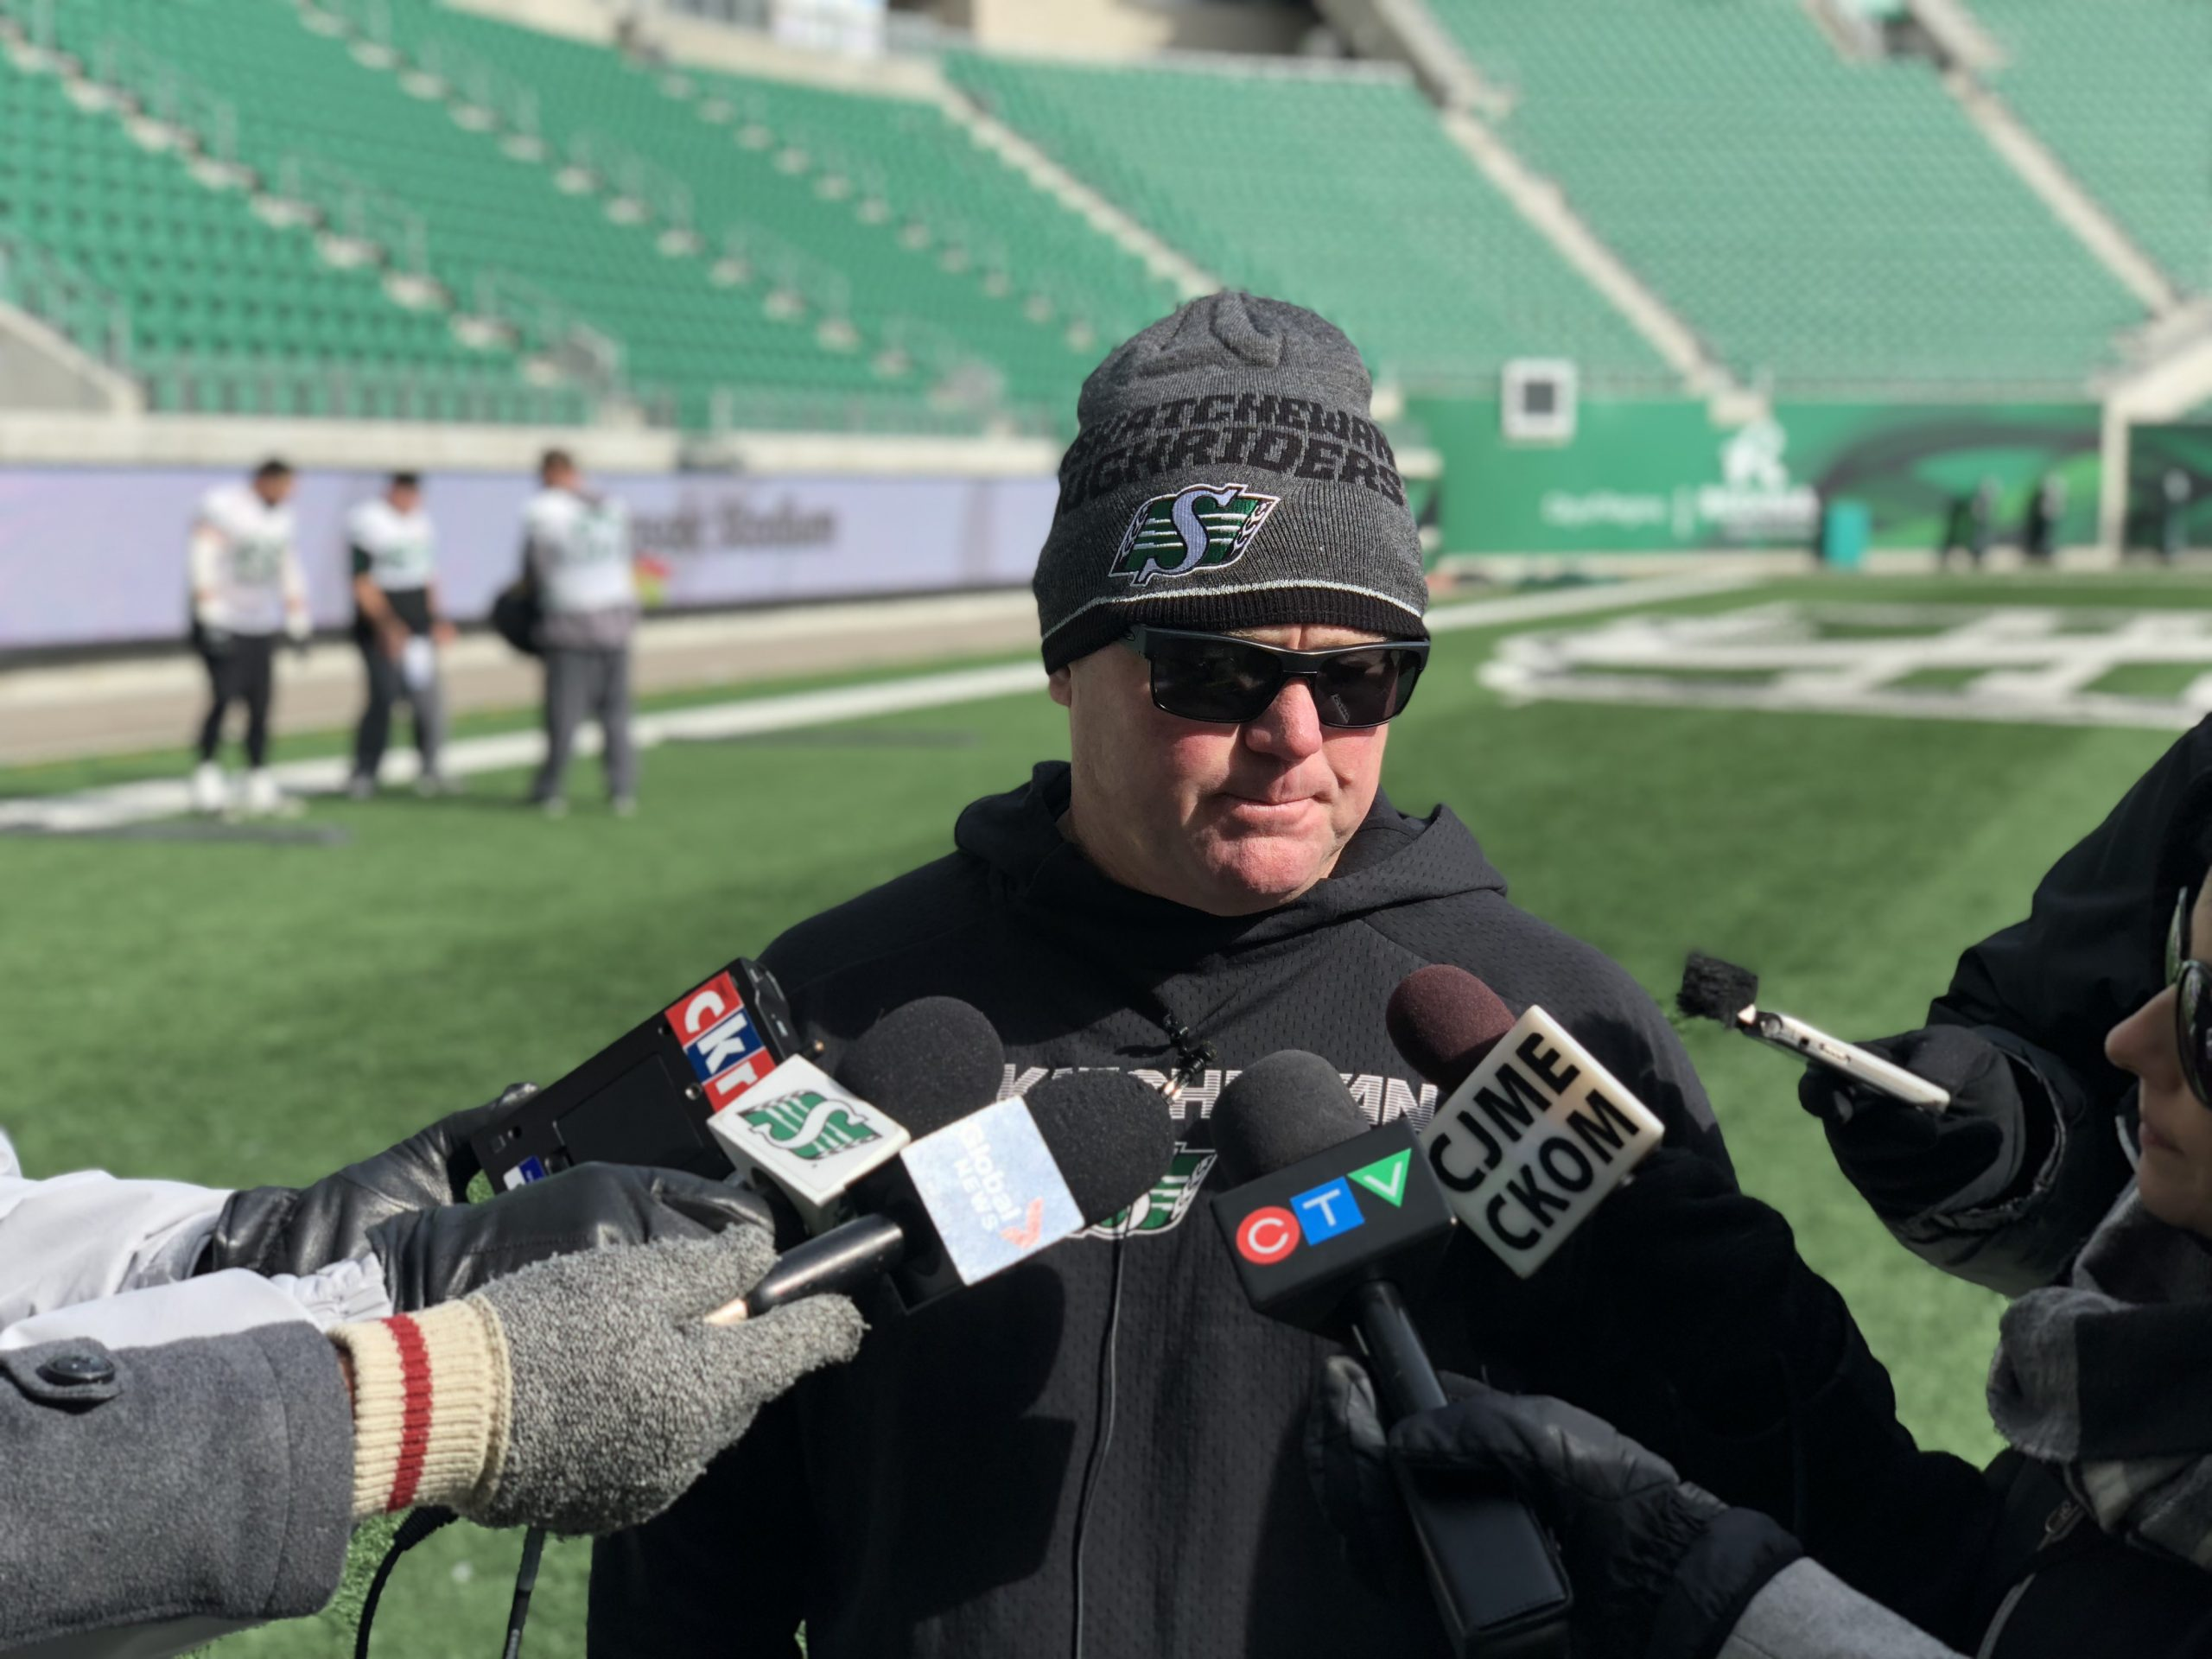 Riders Bundle Up For Day 1 Of Practice